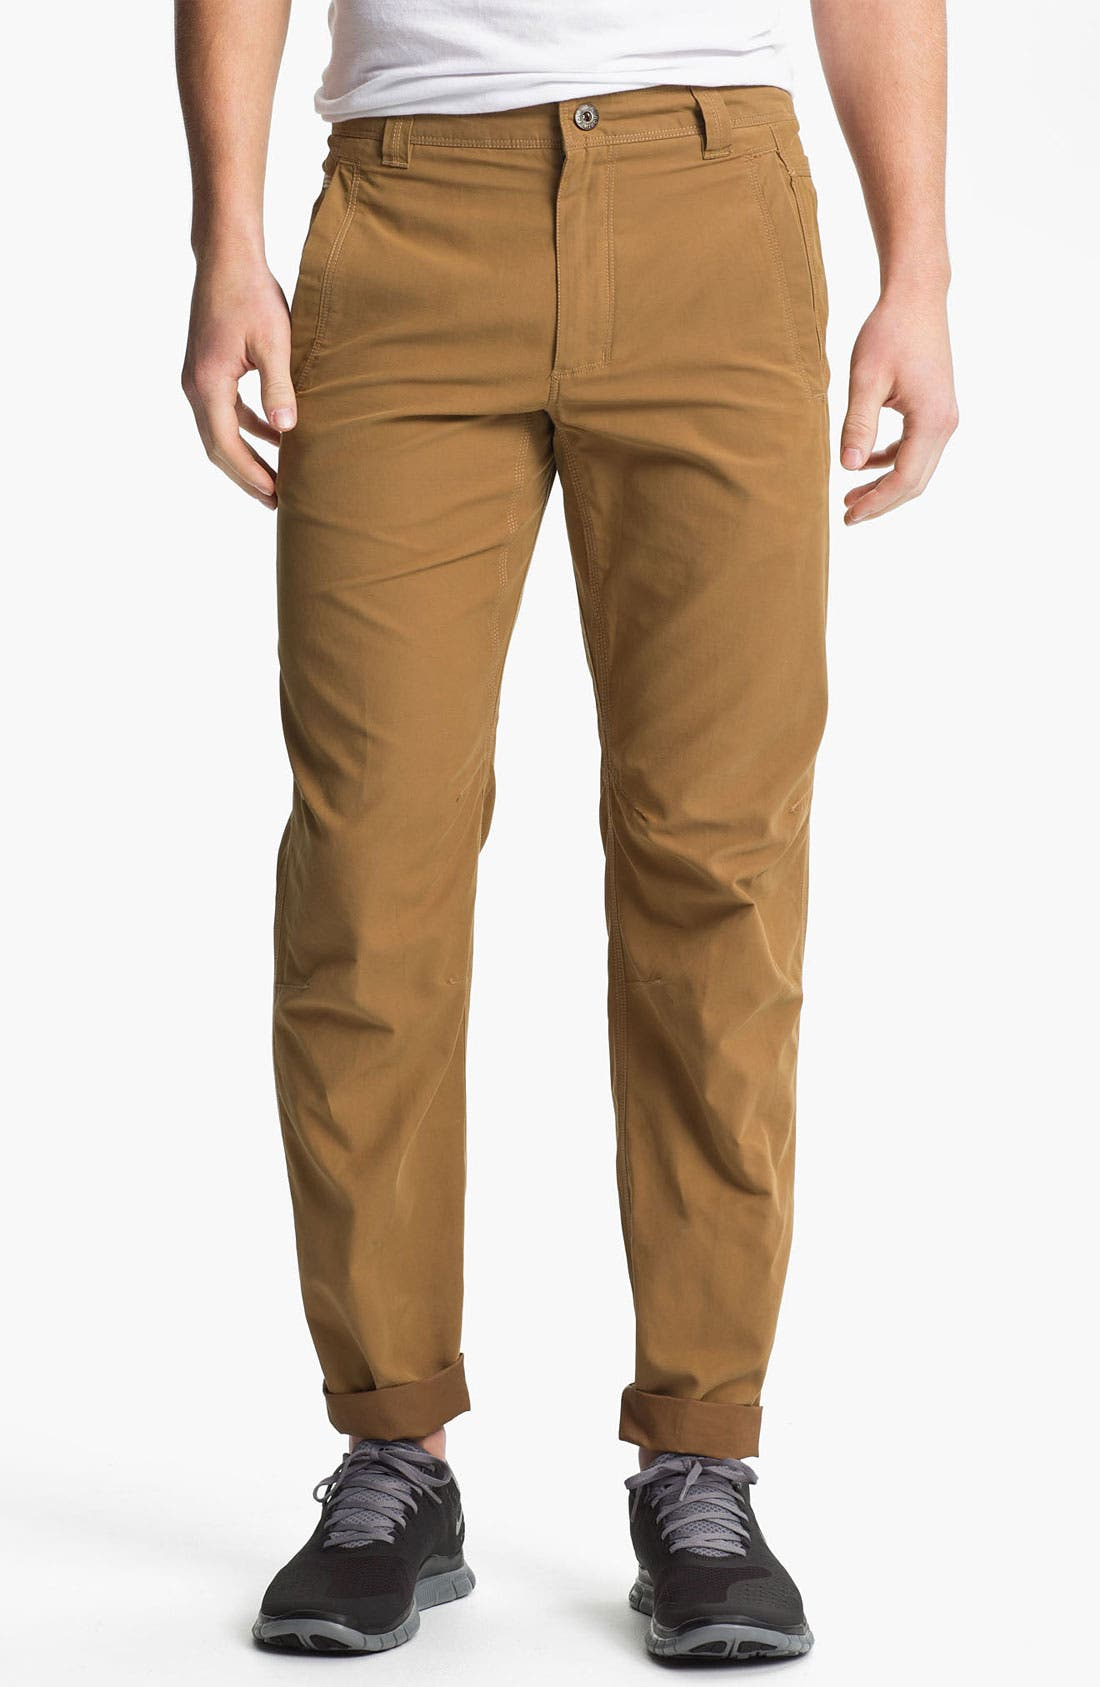 Alternate Image 1 Selected - The North Face 'Granite Dome' Pants